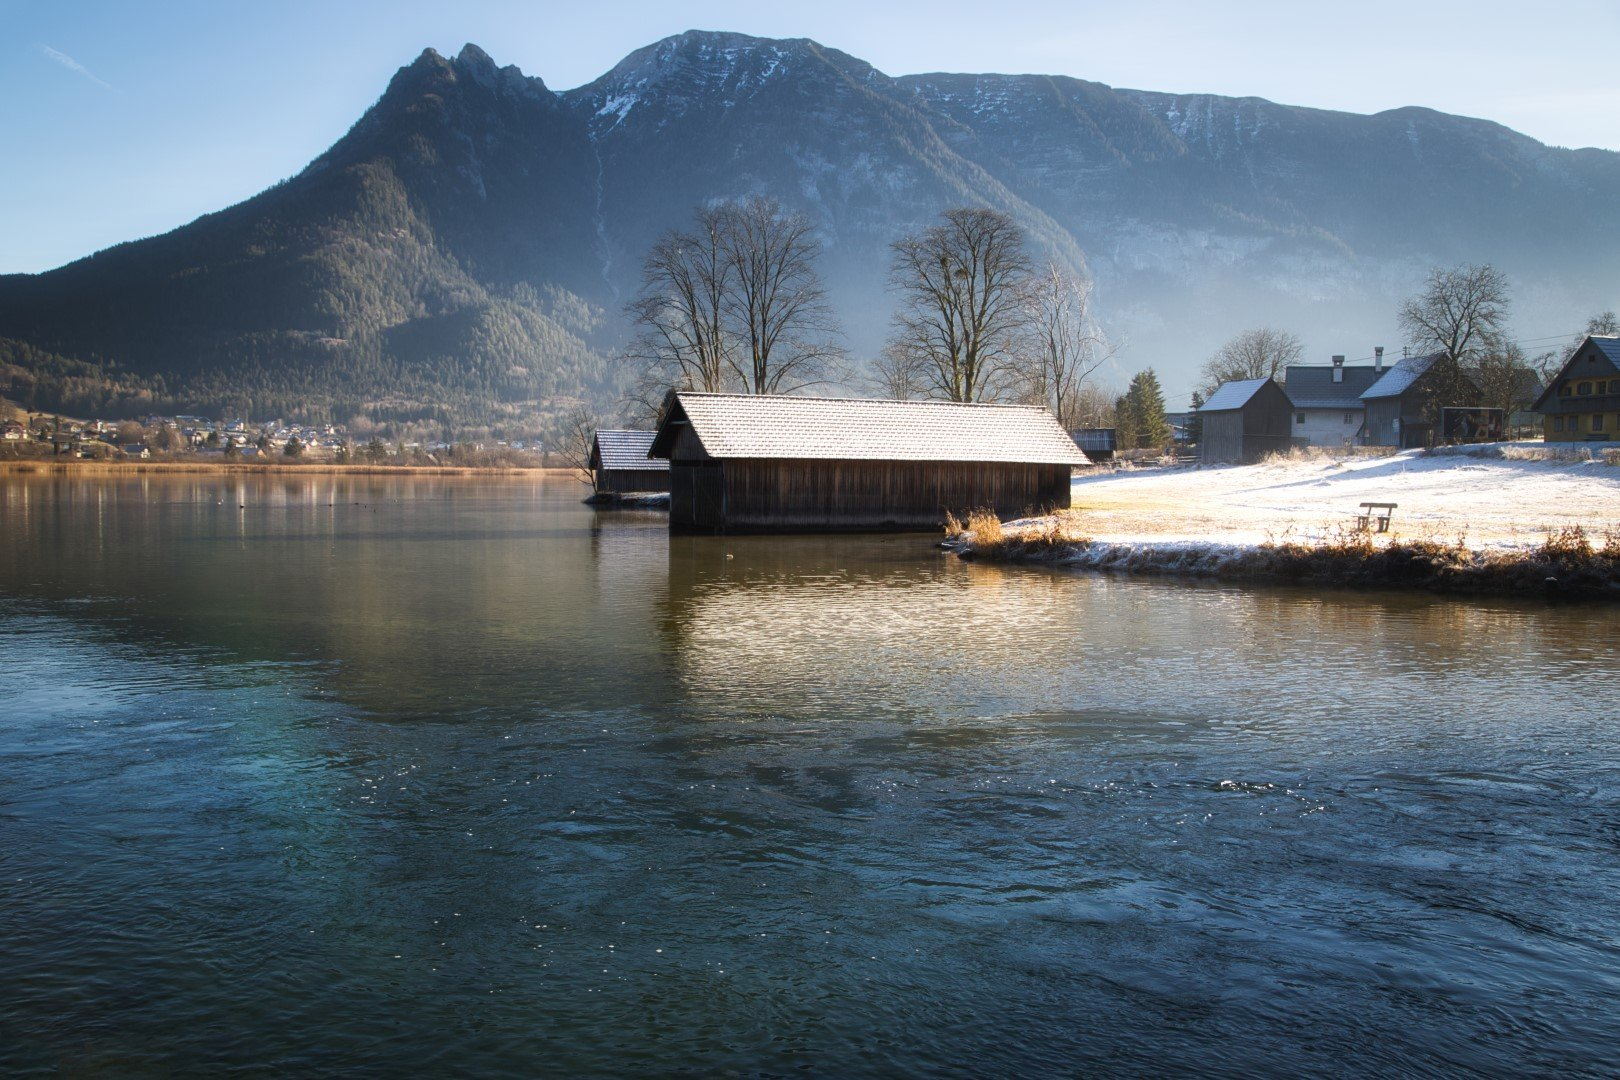 Enjoy the winter wonderland in the Hallstatt and visit Austria's most charming Christmas market.